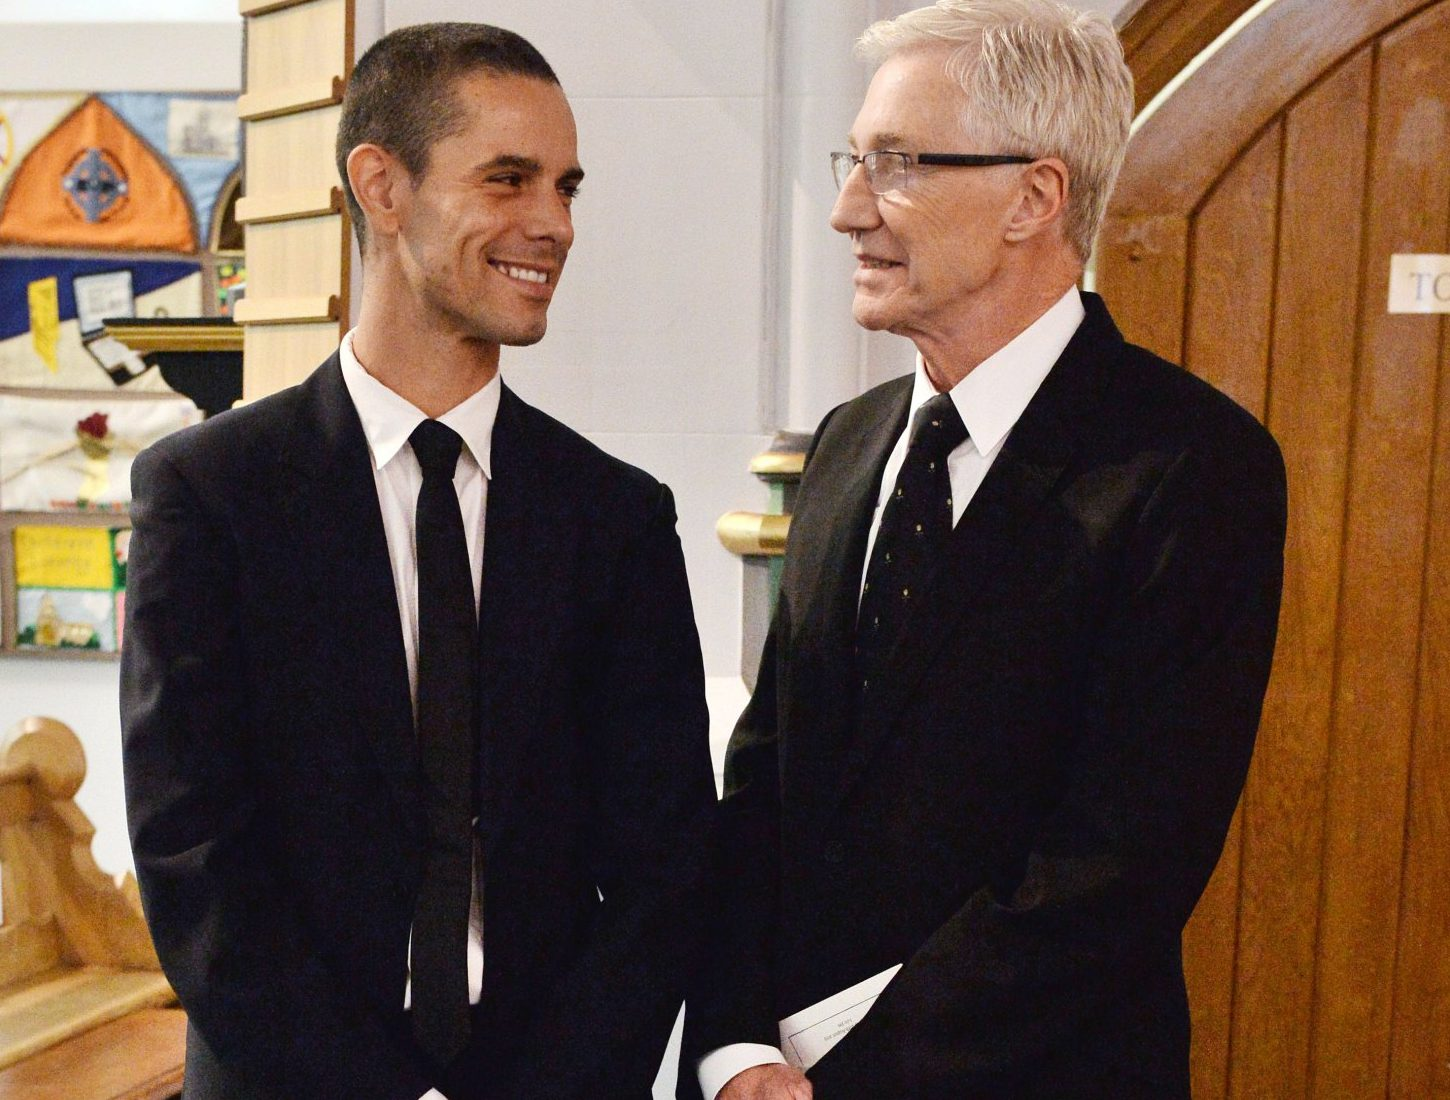 Paul O'Grady and Andre Portasio